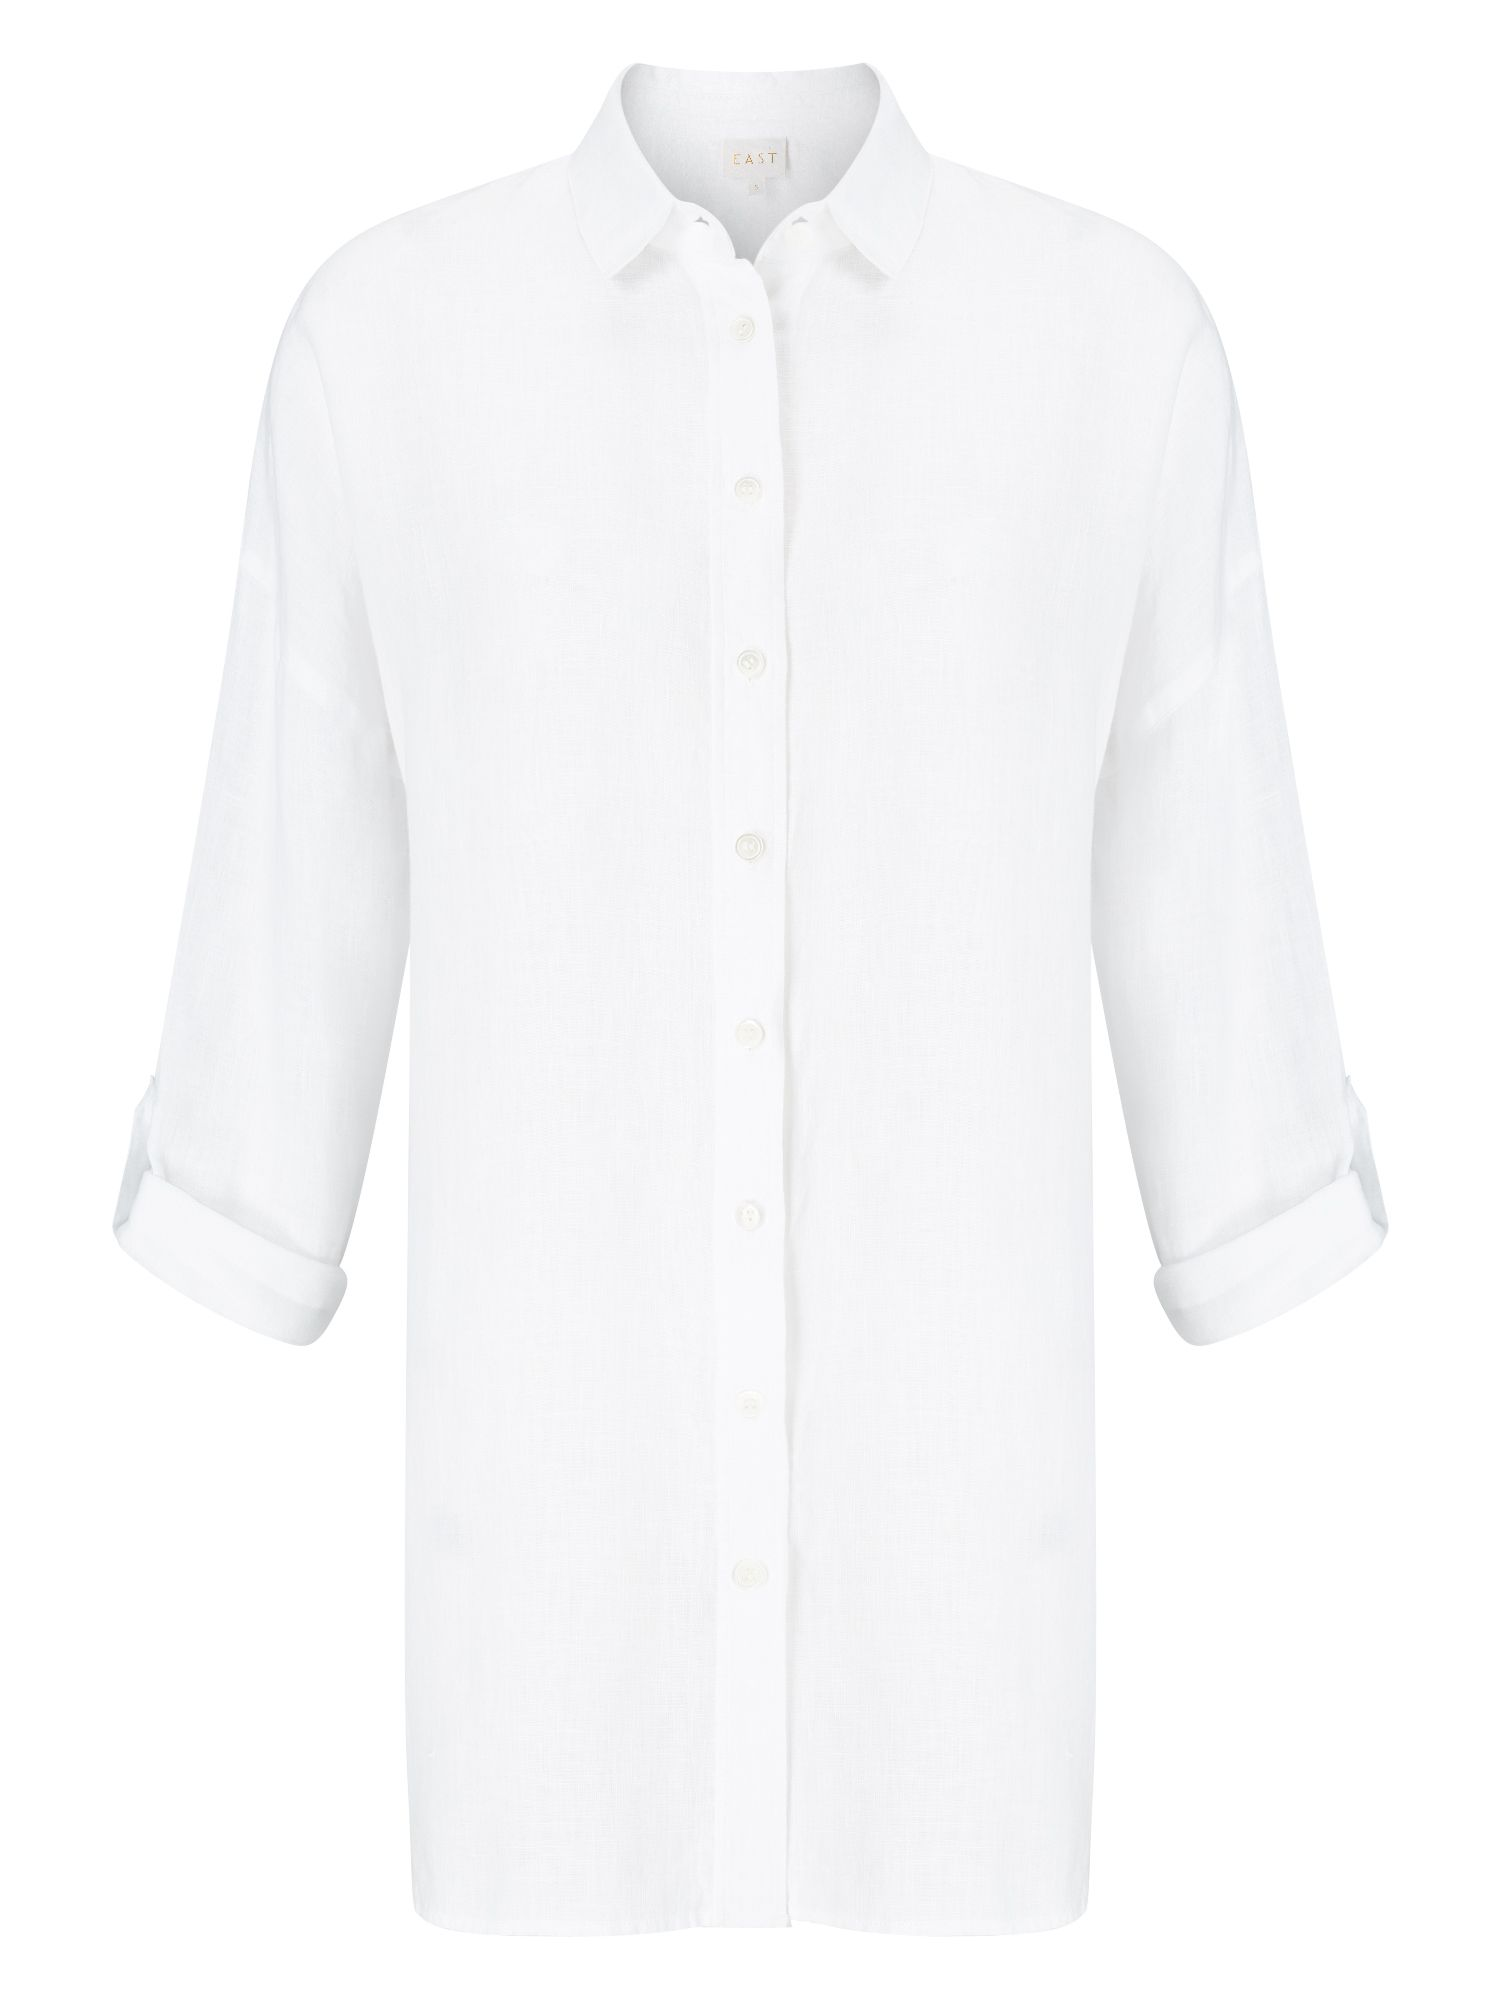 East Oversized Linen Shirt, White